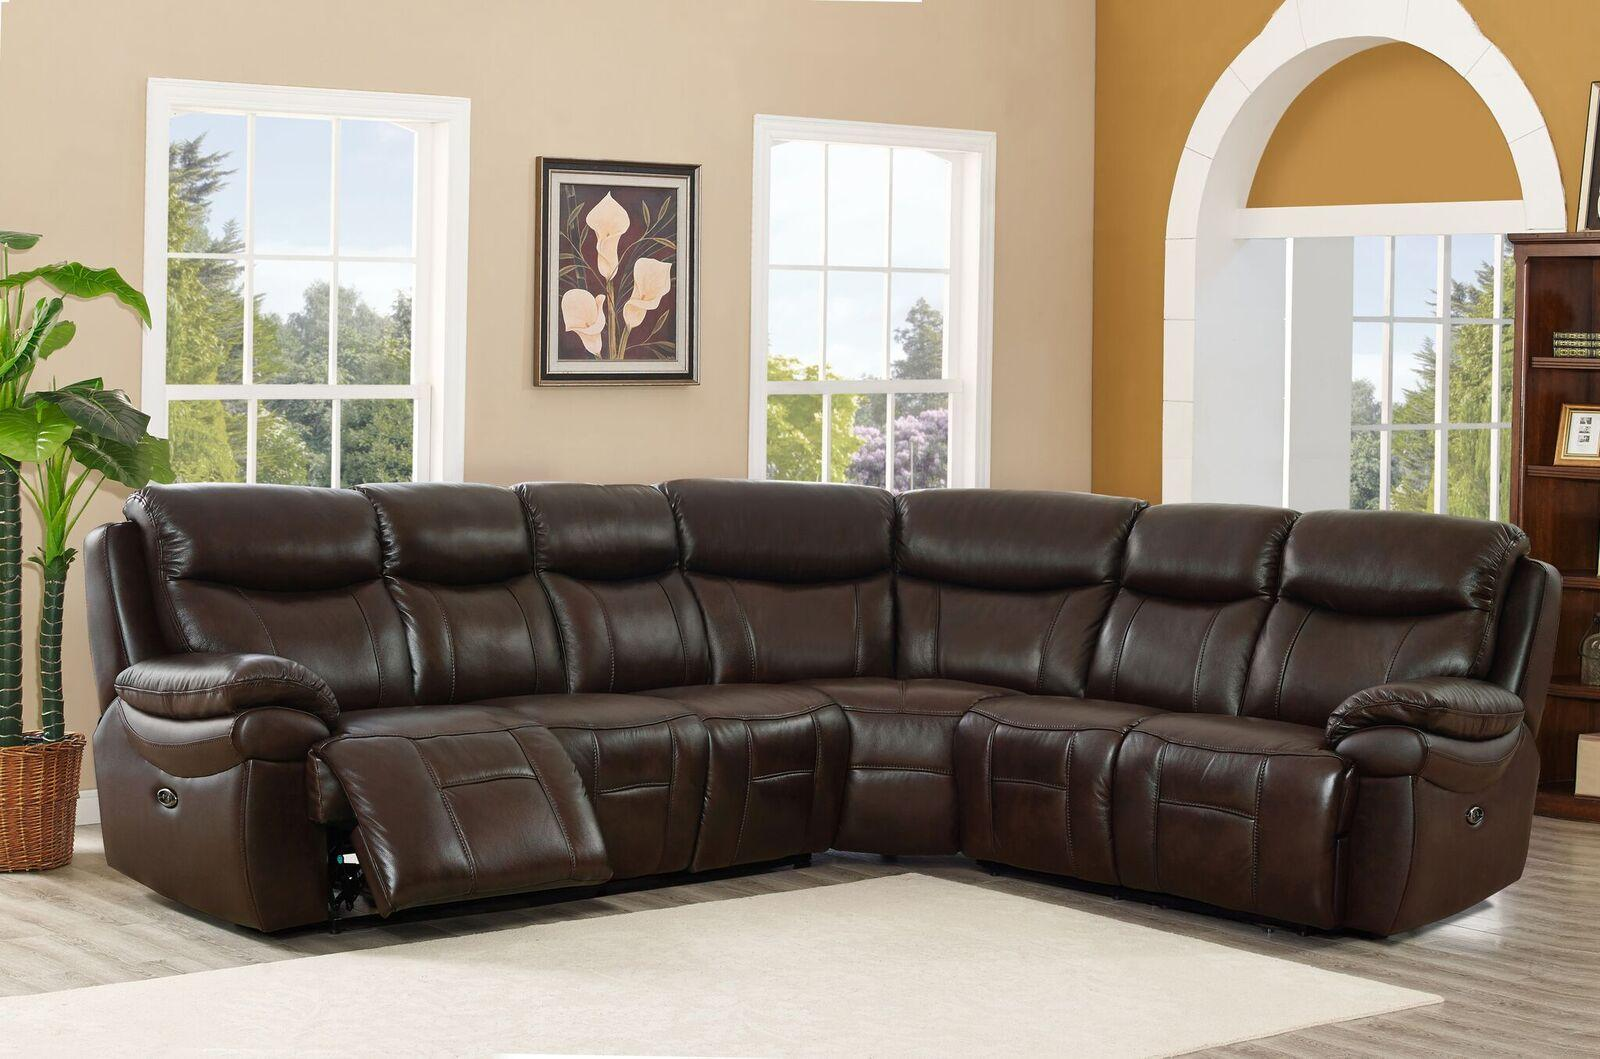 Top Grain Leather Power Reclining Sectional Sofa Hydeline Fraser Amax  Leather